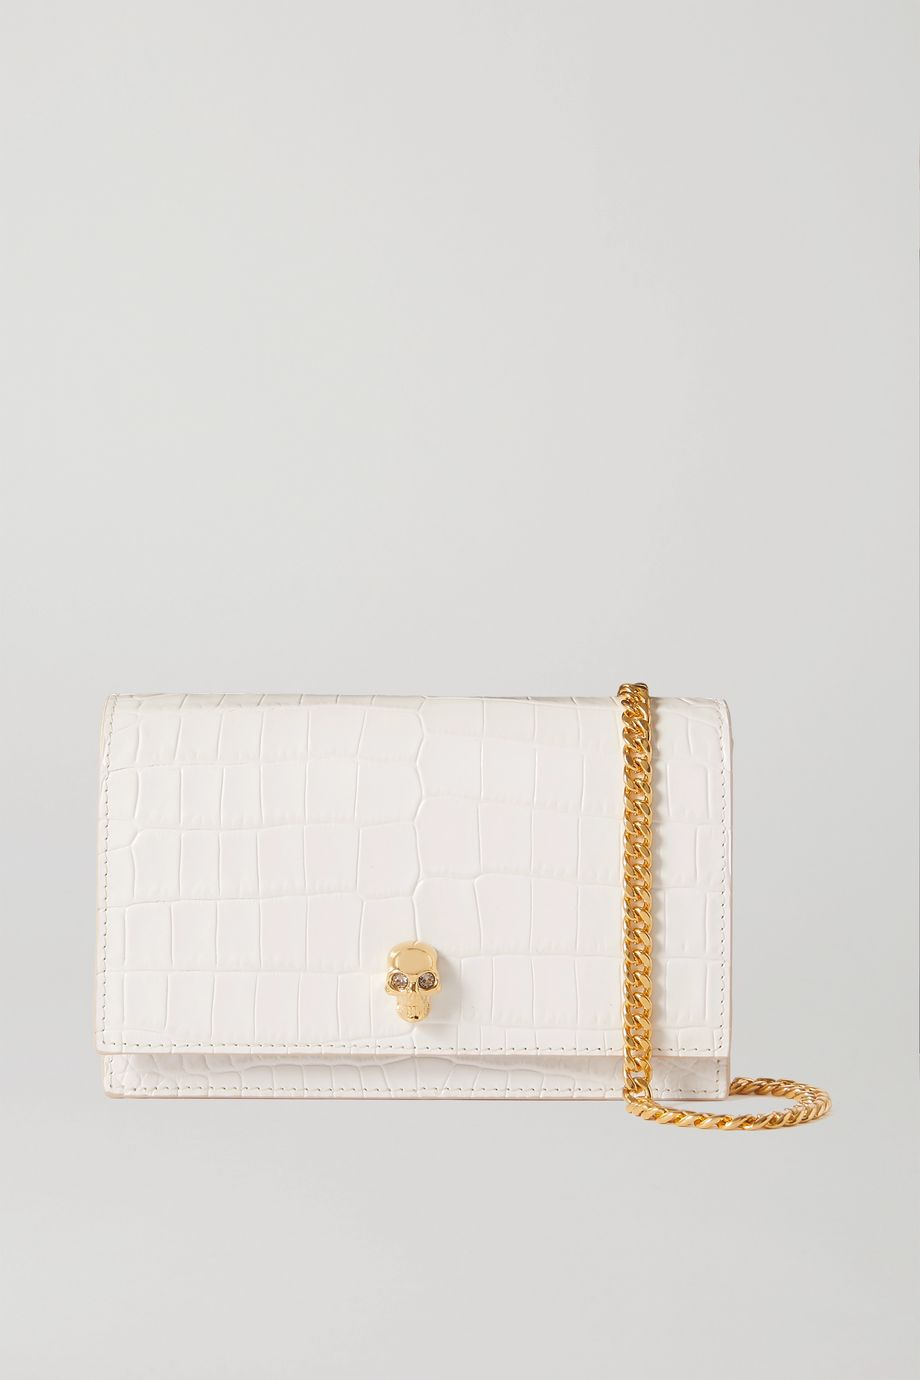 Alexander McQueen Skull croc-effect leather shoulder bag